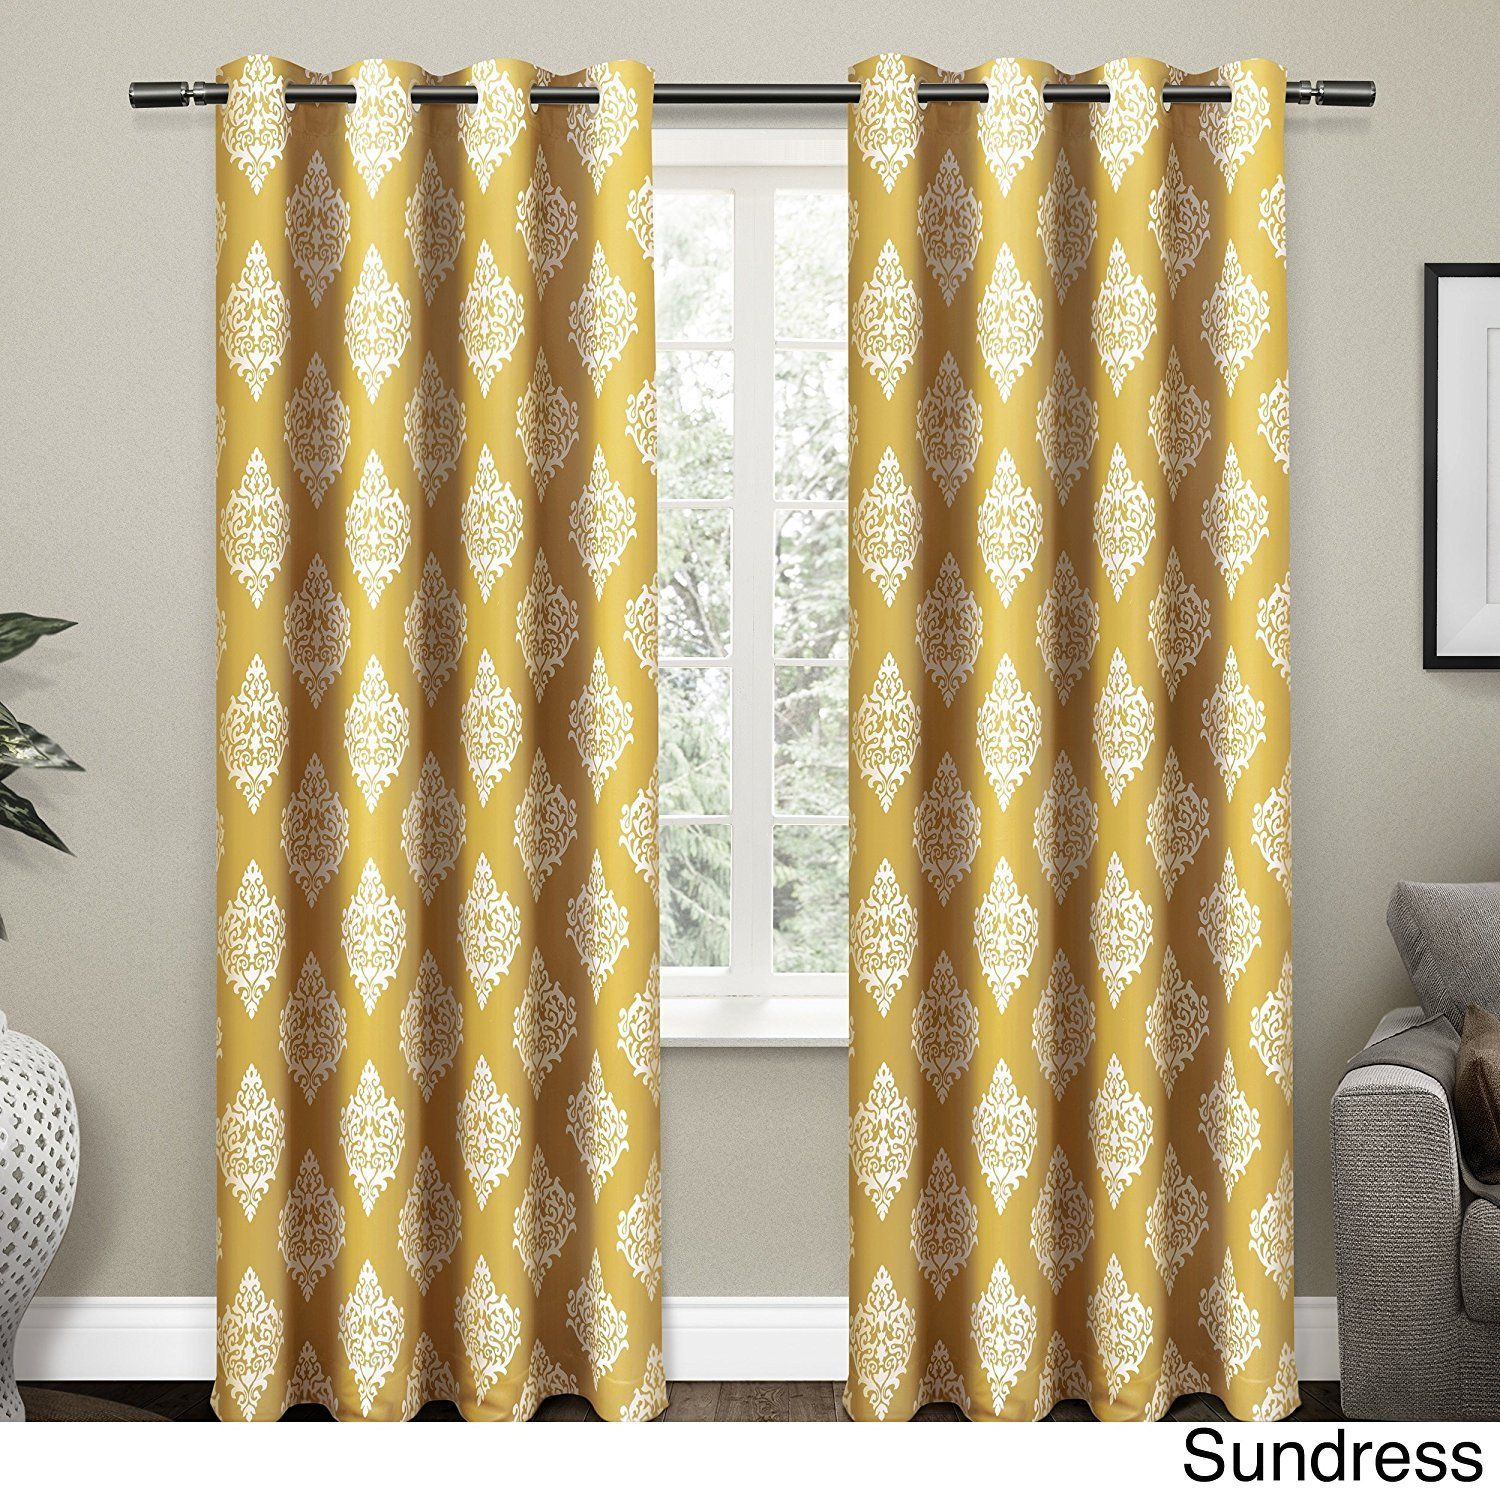 96 Inch Sundress Yellow White Medallion Curtains Panel Pair Set Gold Color Moroccan Drapes Damask Pattern Trellis Window Treatments Luxury